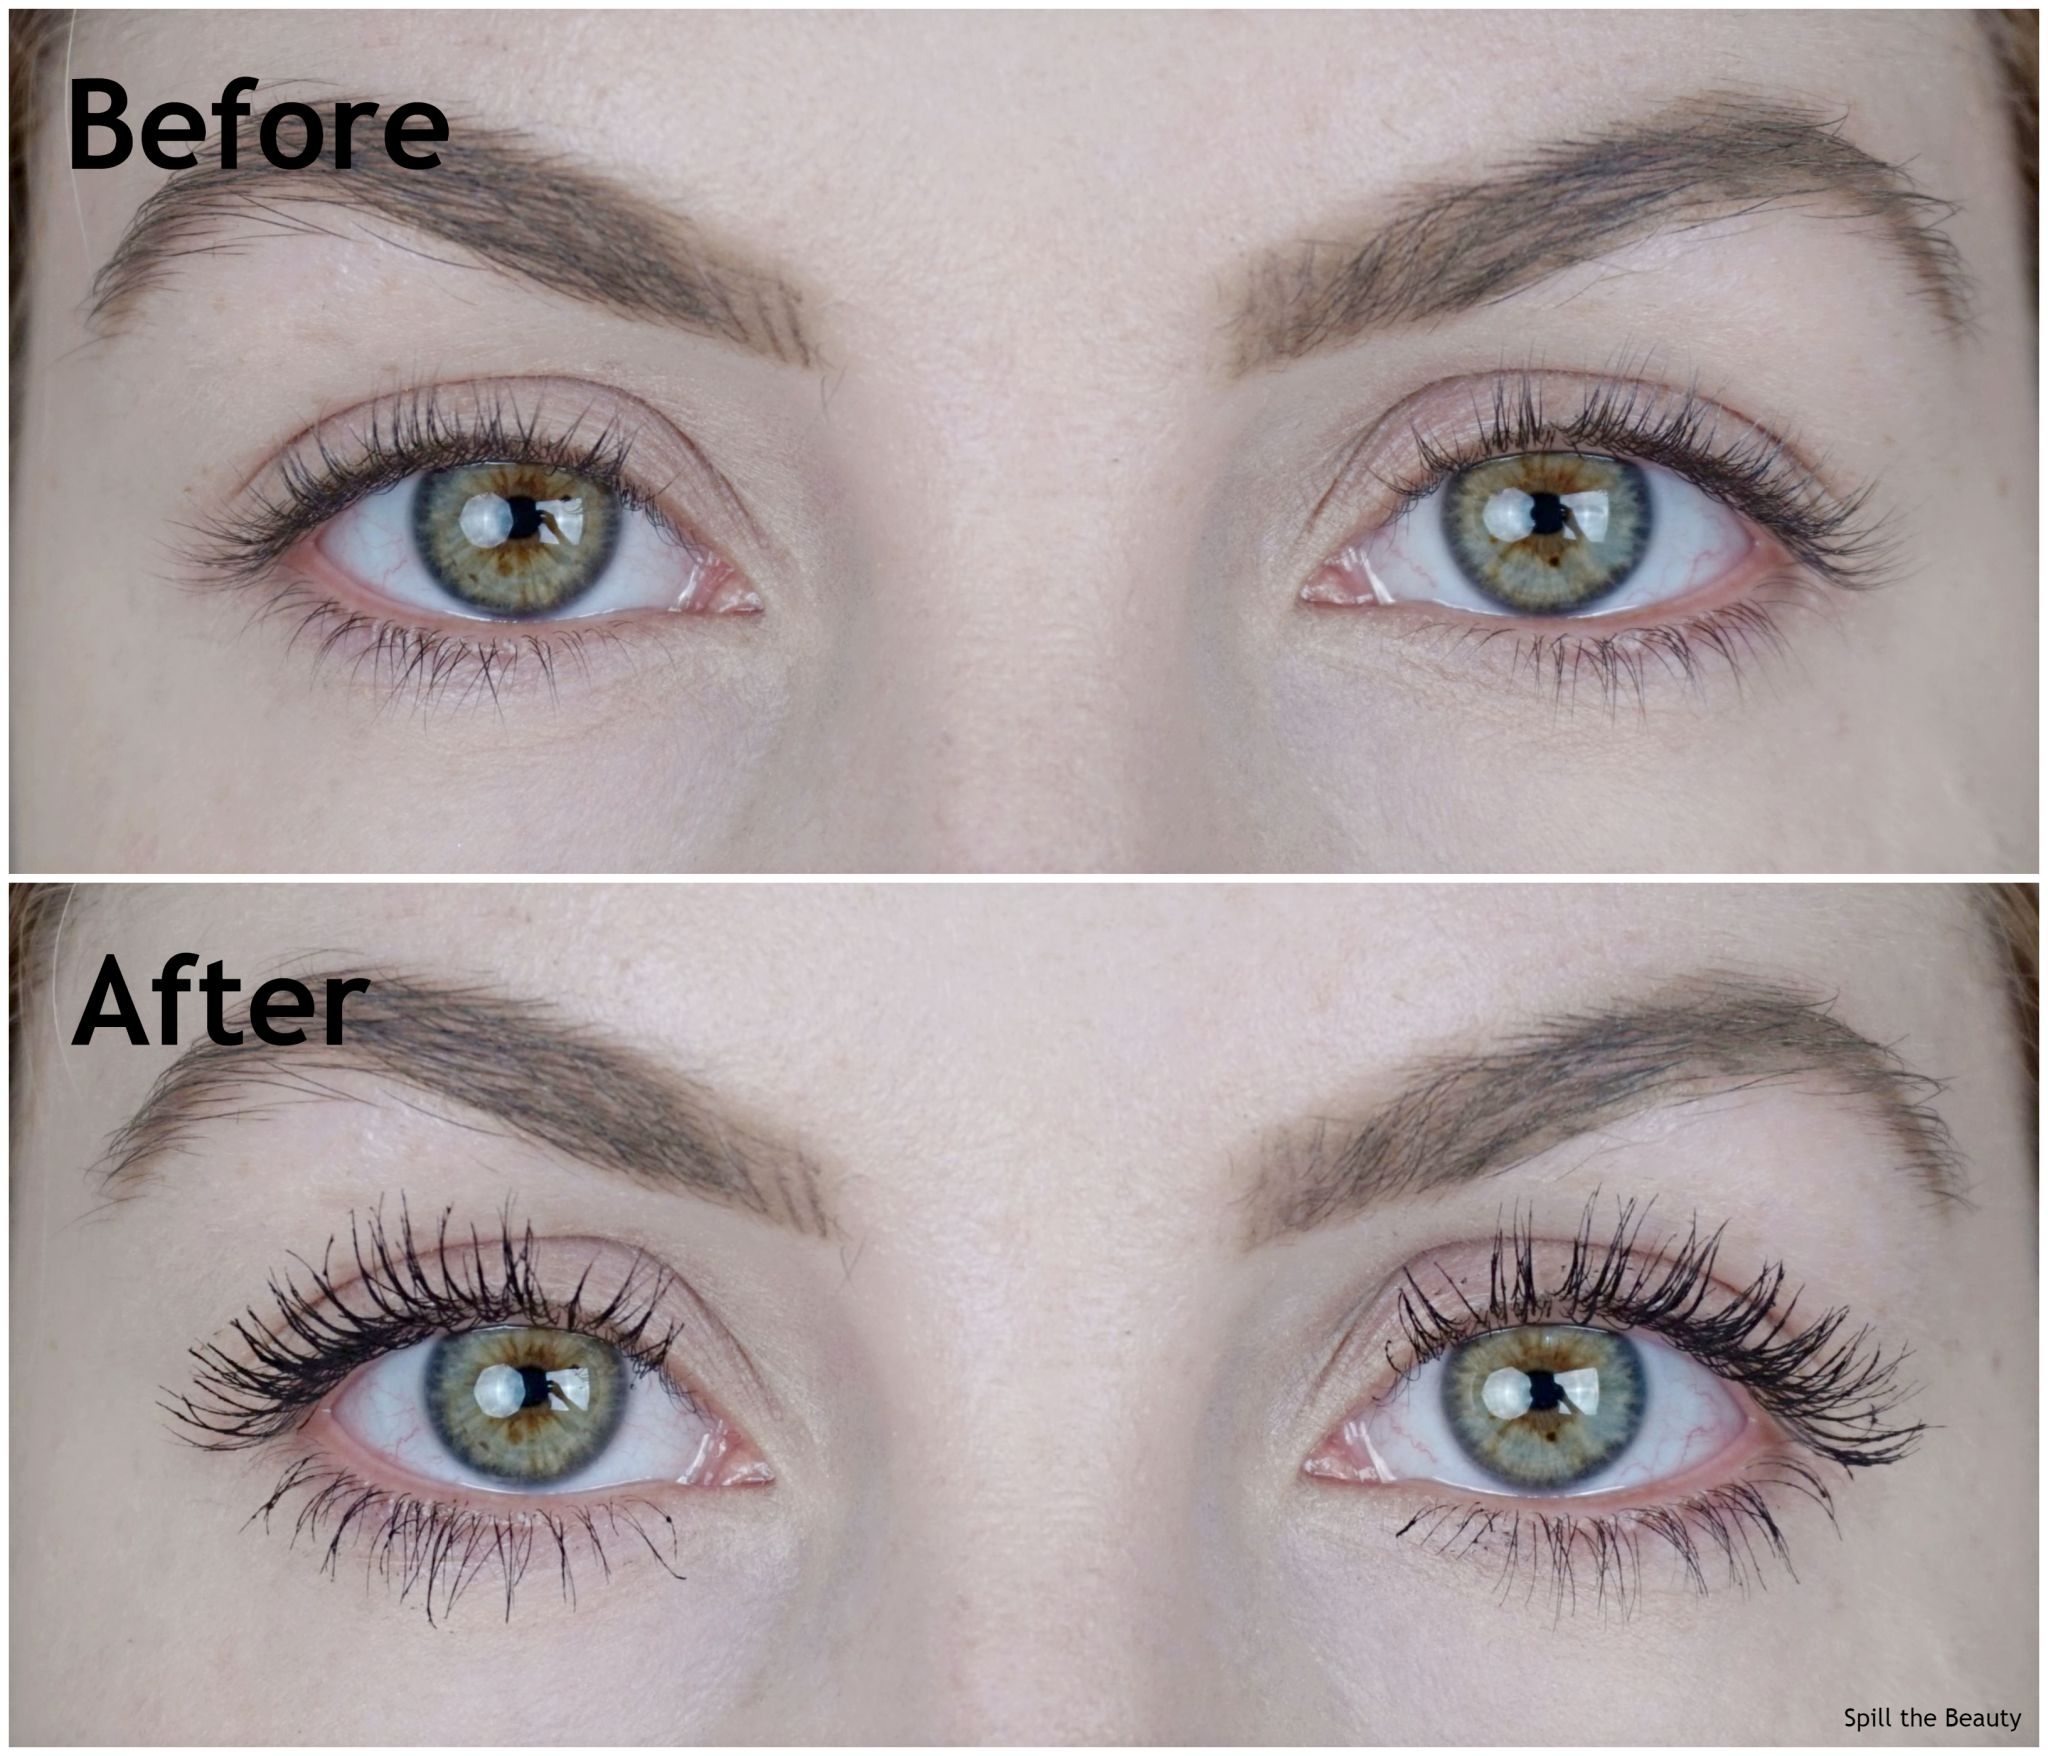 a5446d12177 NARS Climax Mascara - Review, Before & After - Spill the Beauty